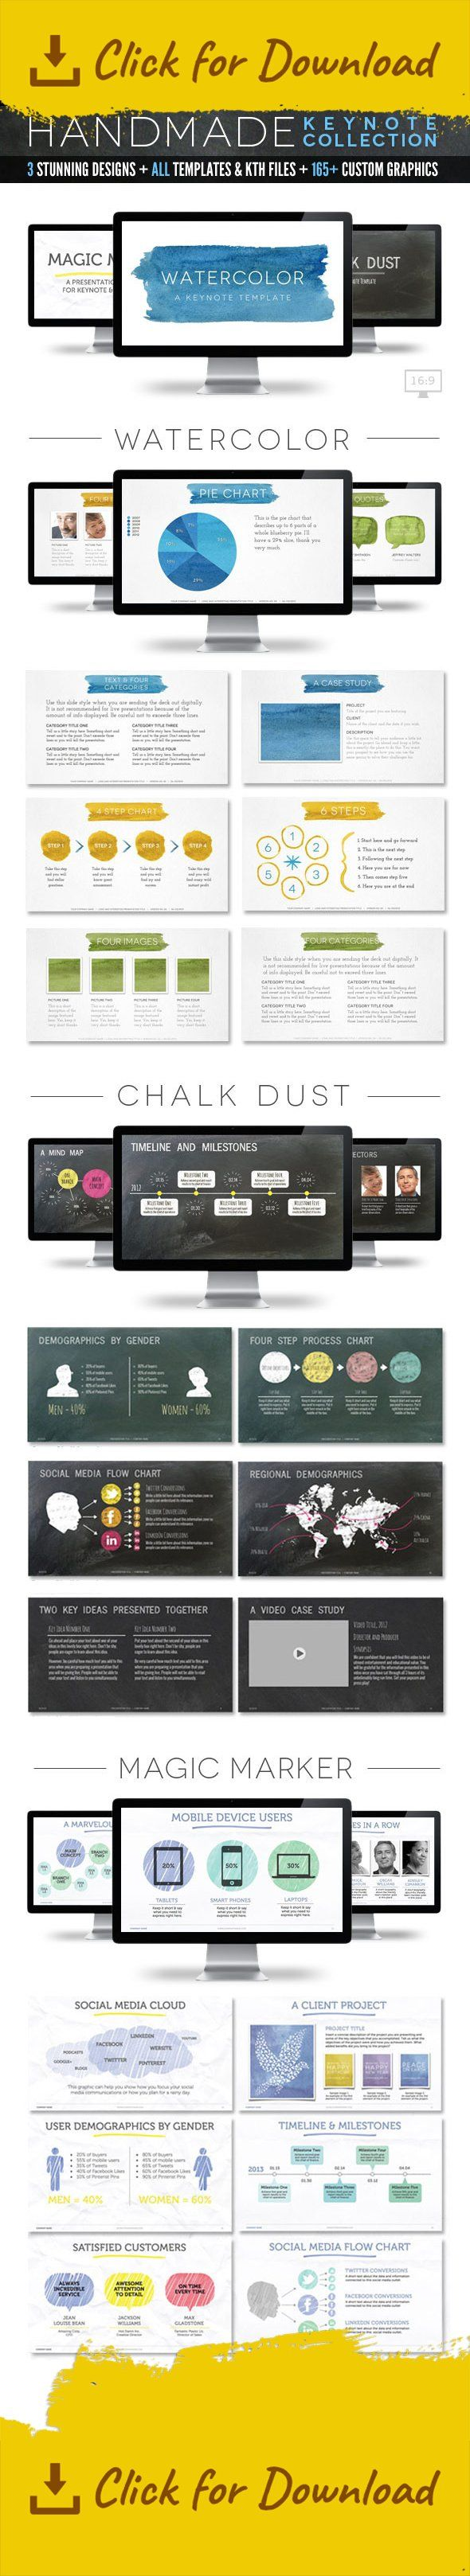 agency presentation, artistic, black board, blue, business proposal presentation, chalk board, colorful, company presentation, customizable, digital proposal, easy, graphic icons, green, hand drawn, hand made, hi-lighter, info graphic, infographics, keynote template bundle, marker pen, multimedia, paint, paper texture, presentation deck, presentation template, social media, user demographics, video presentation, watercolor The Handmade Collection – Keynote Template Bundle Flex your cr...